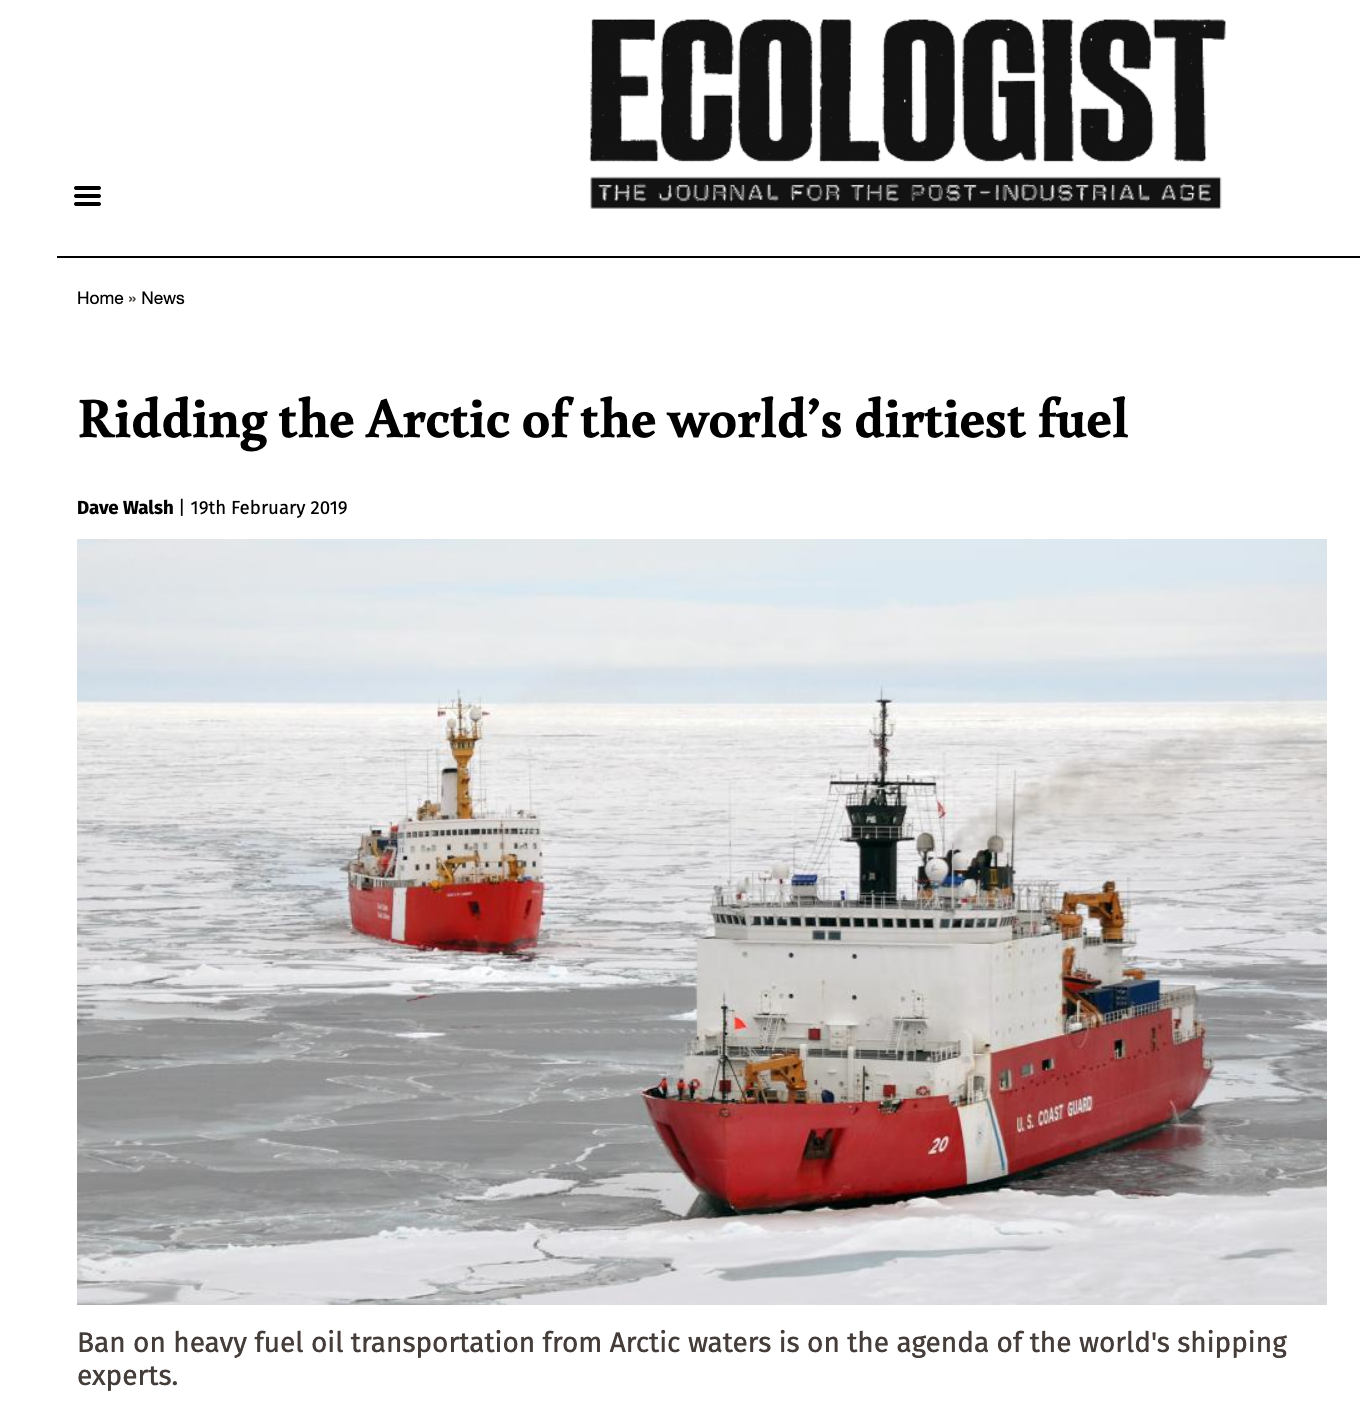 Ridding the Arctic of the world's dirtiest fuel